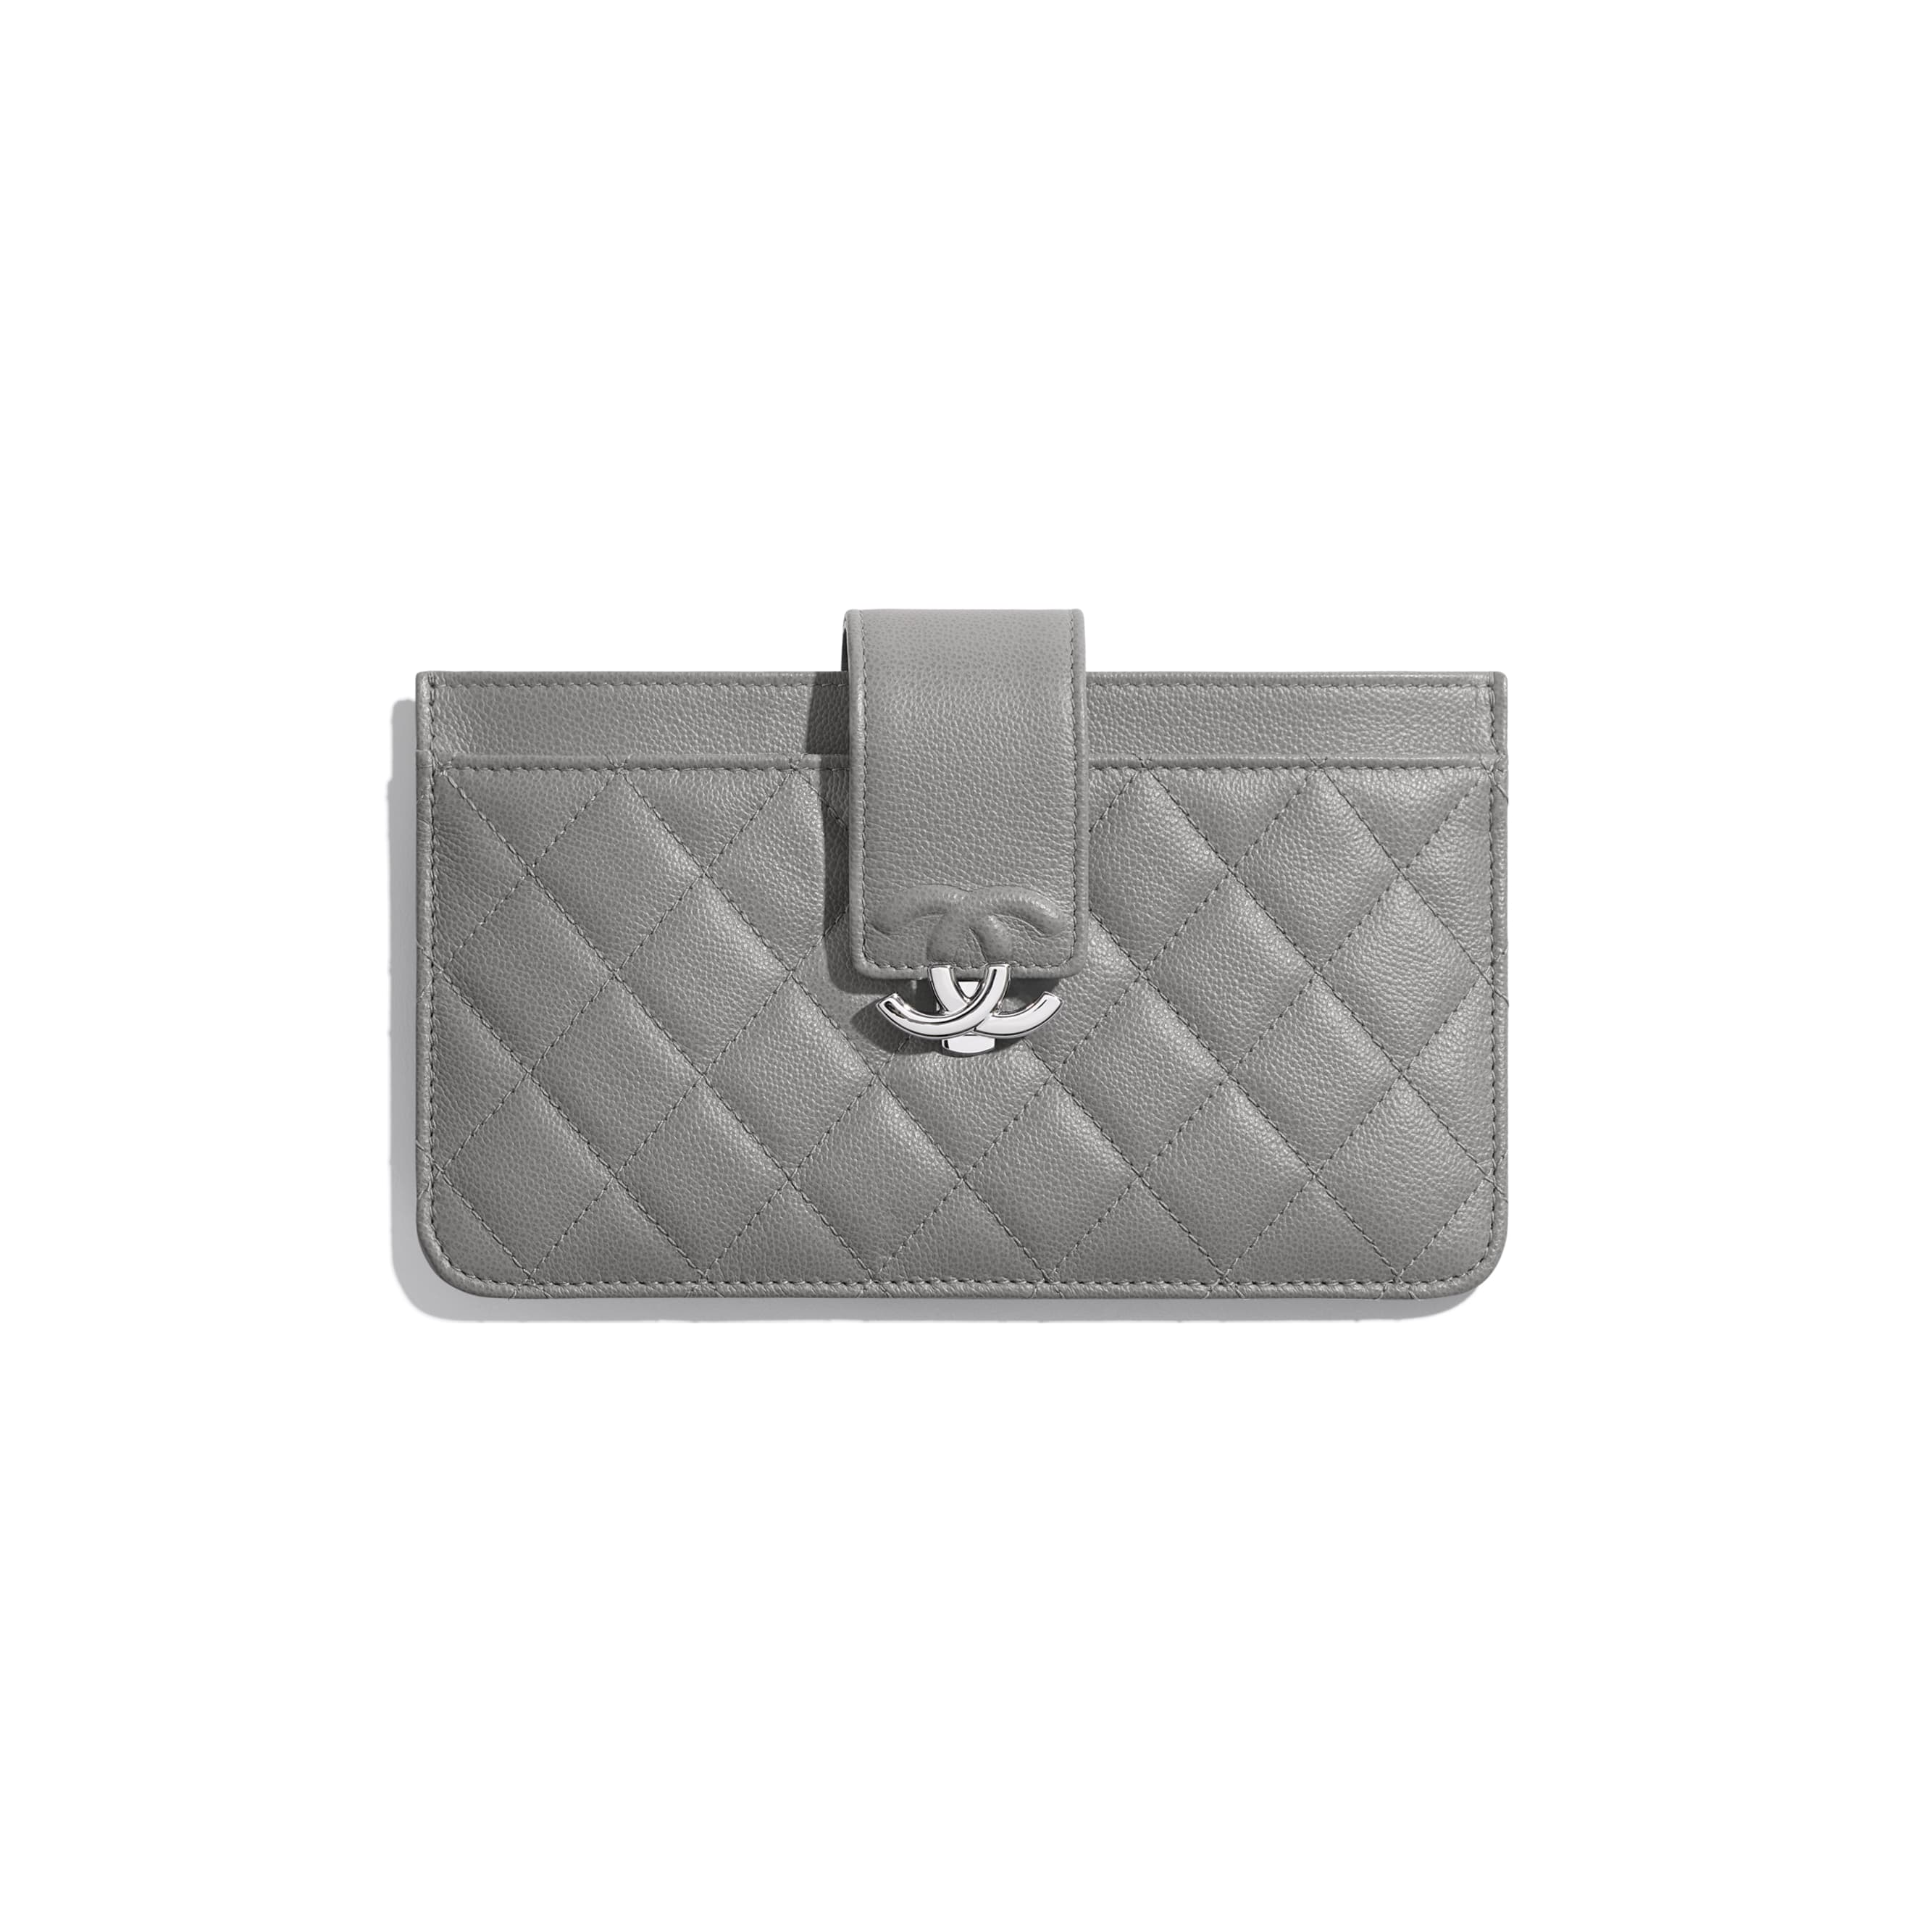 Pouch - Gray - Grained Calfskin & Silver-Tone Metal - CHANEL - Default view - see standard sized version